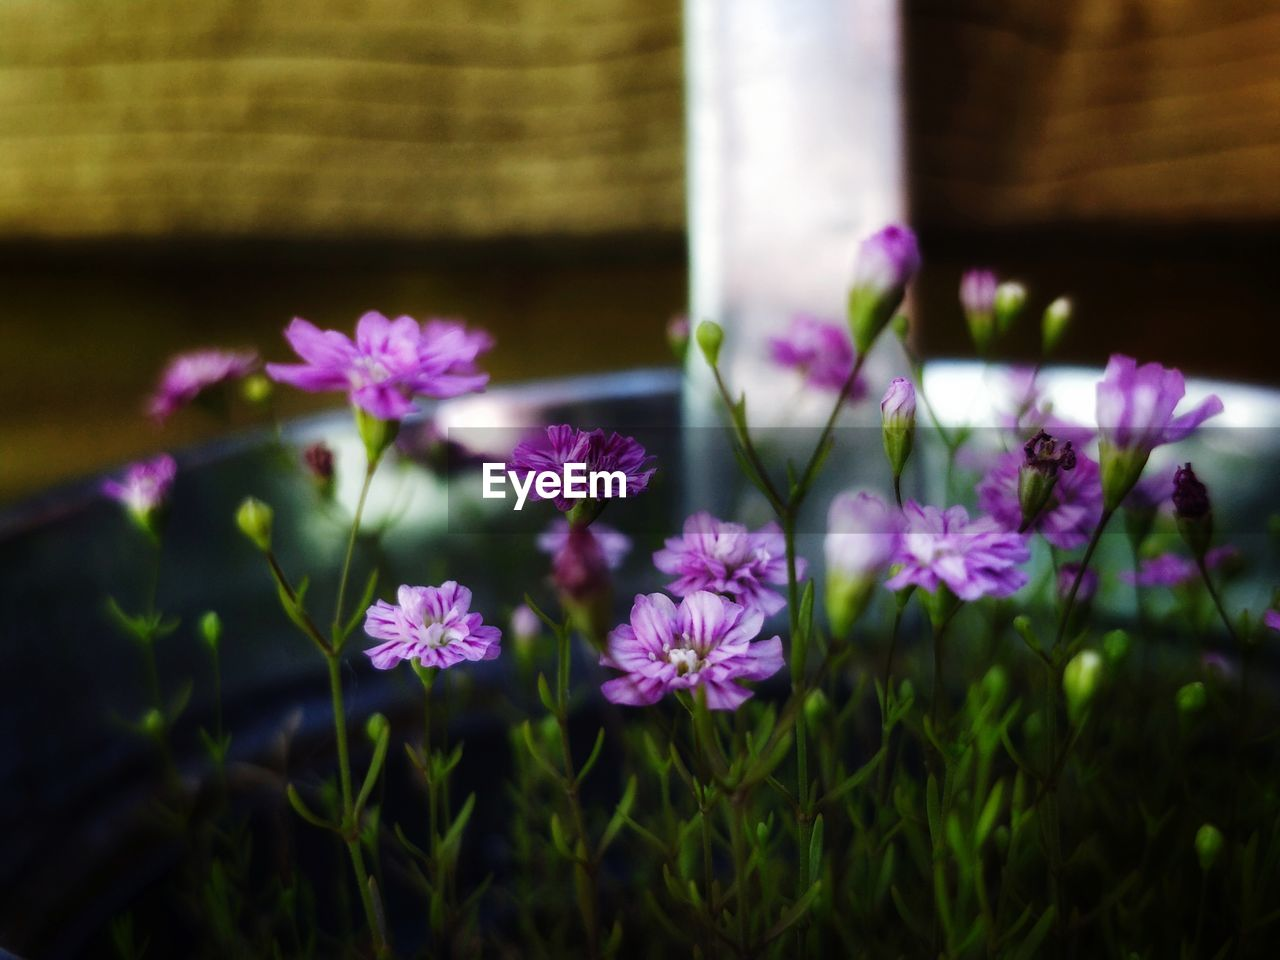 flower, flowering plant, freshness, plant, fragility, beauty in nature, vulnerability, growth, close-up, petal, nature, no people, flower head, selective focus, inflorescence, day, outdoors, pink color, purple, plant stem